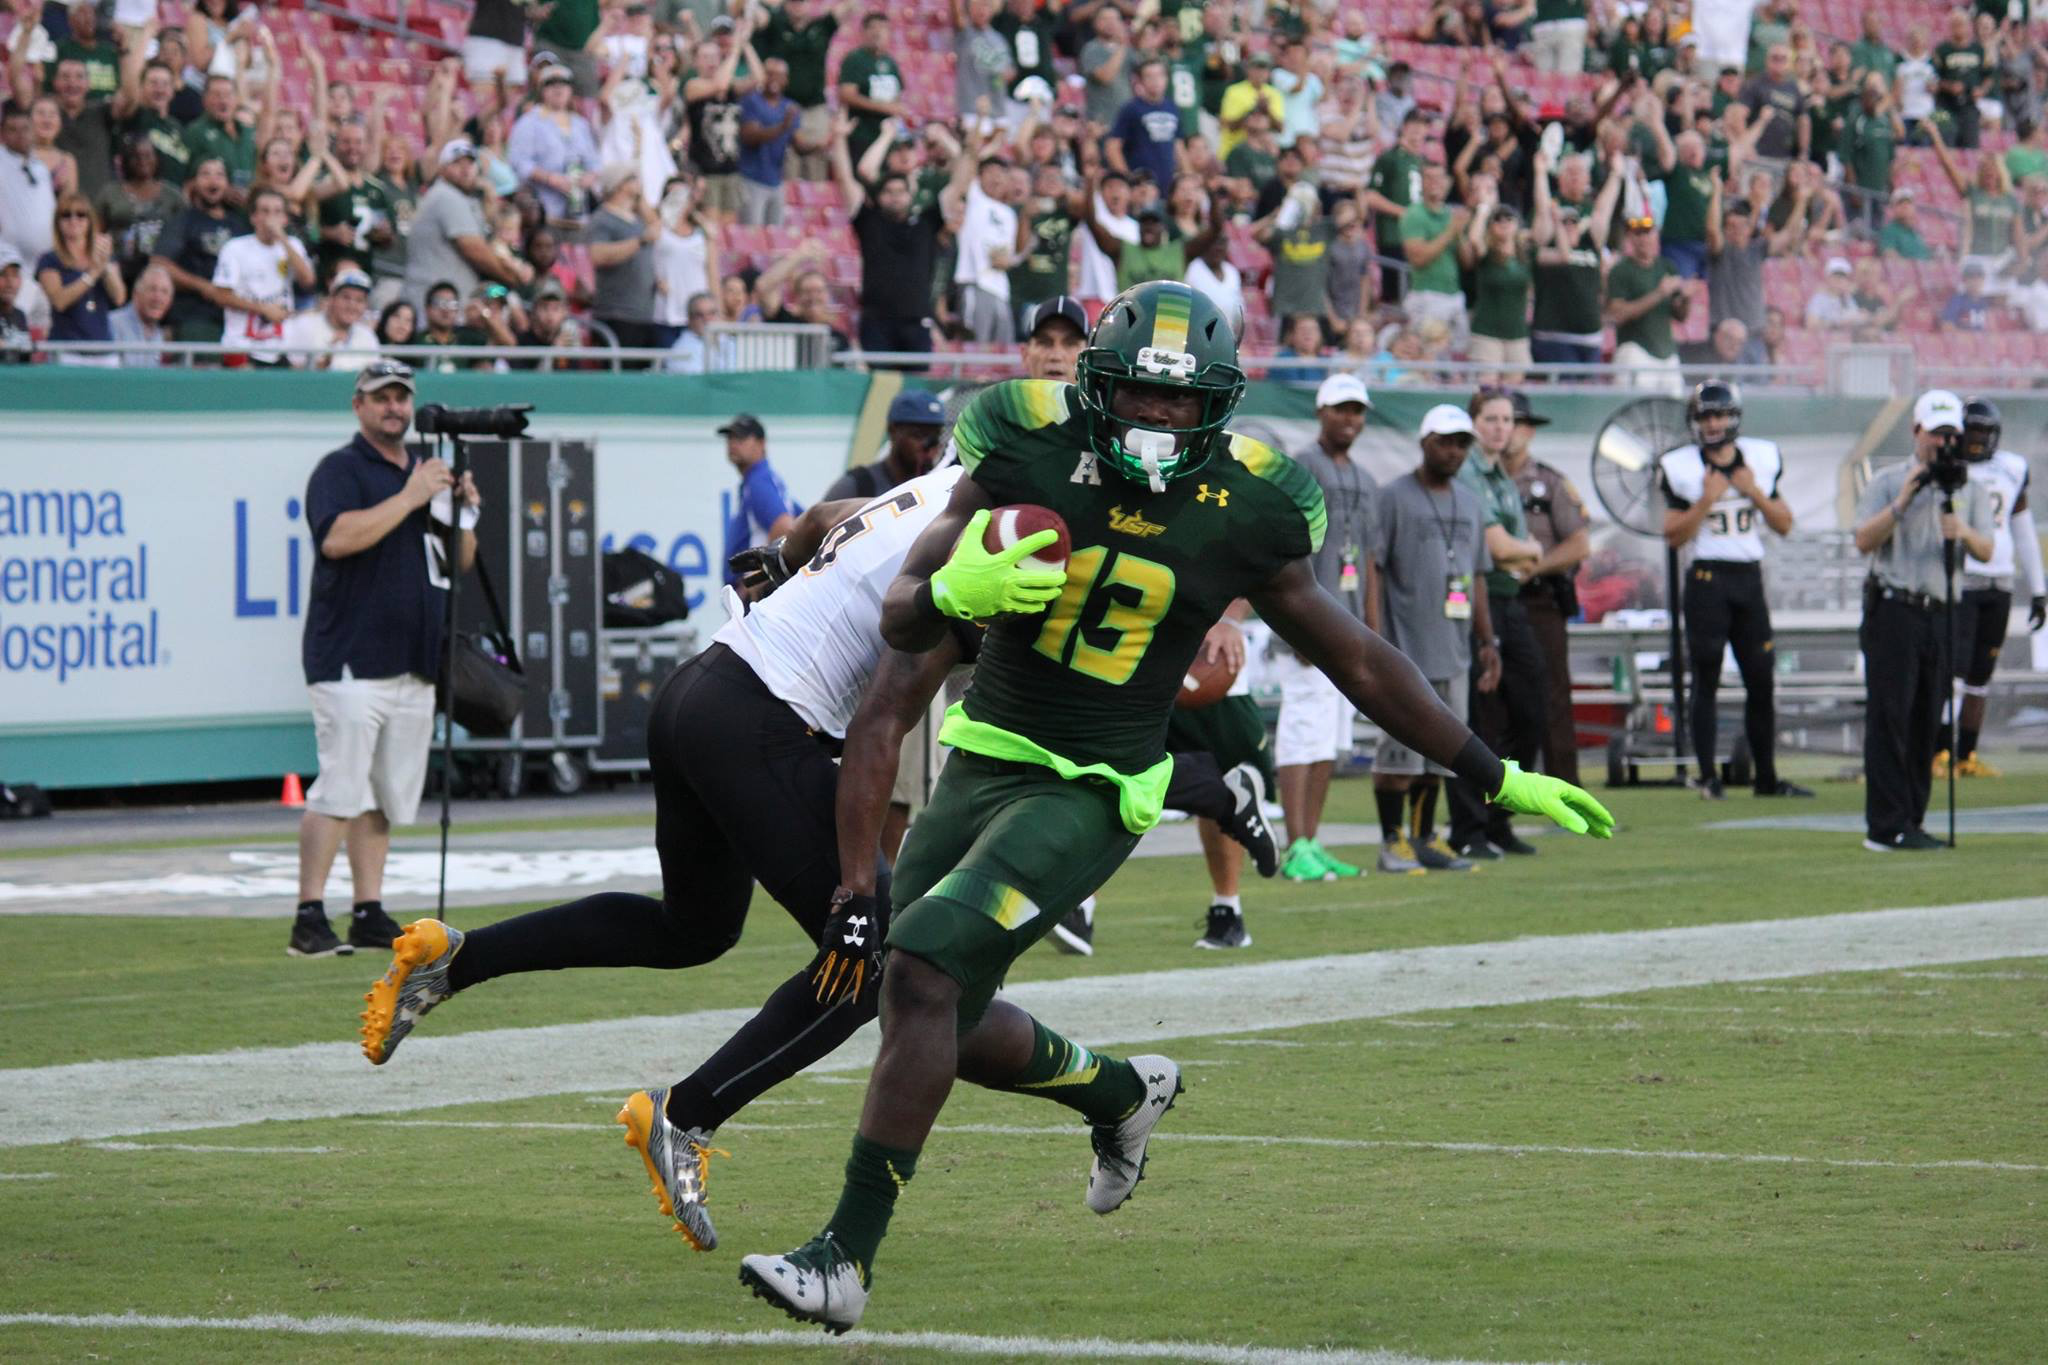 To expand, USF St. Petersburg needs on-campus sports